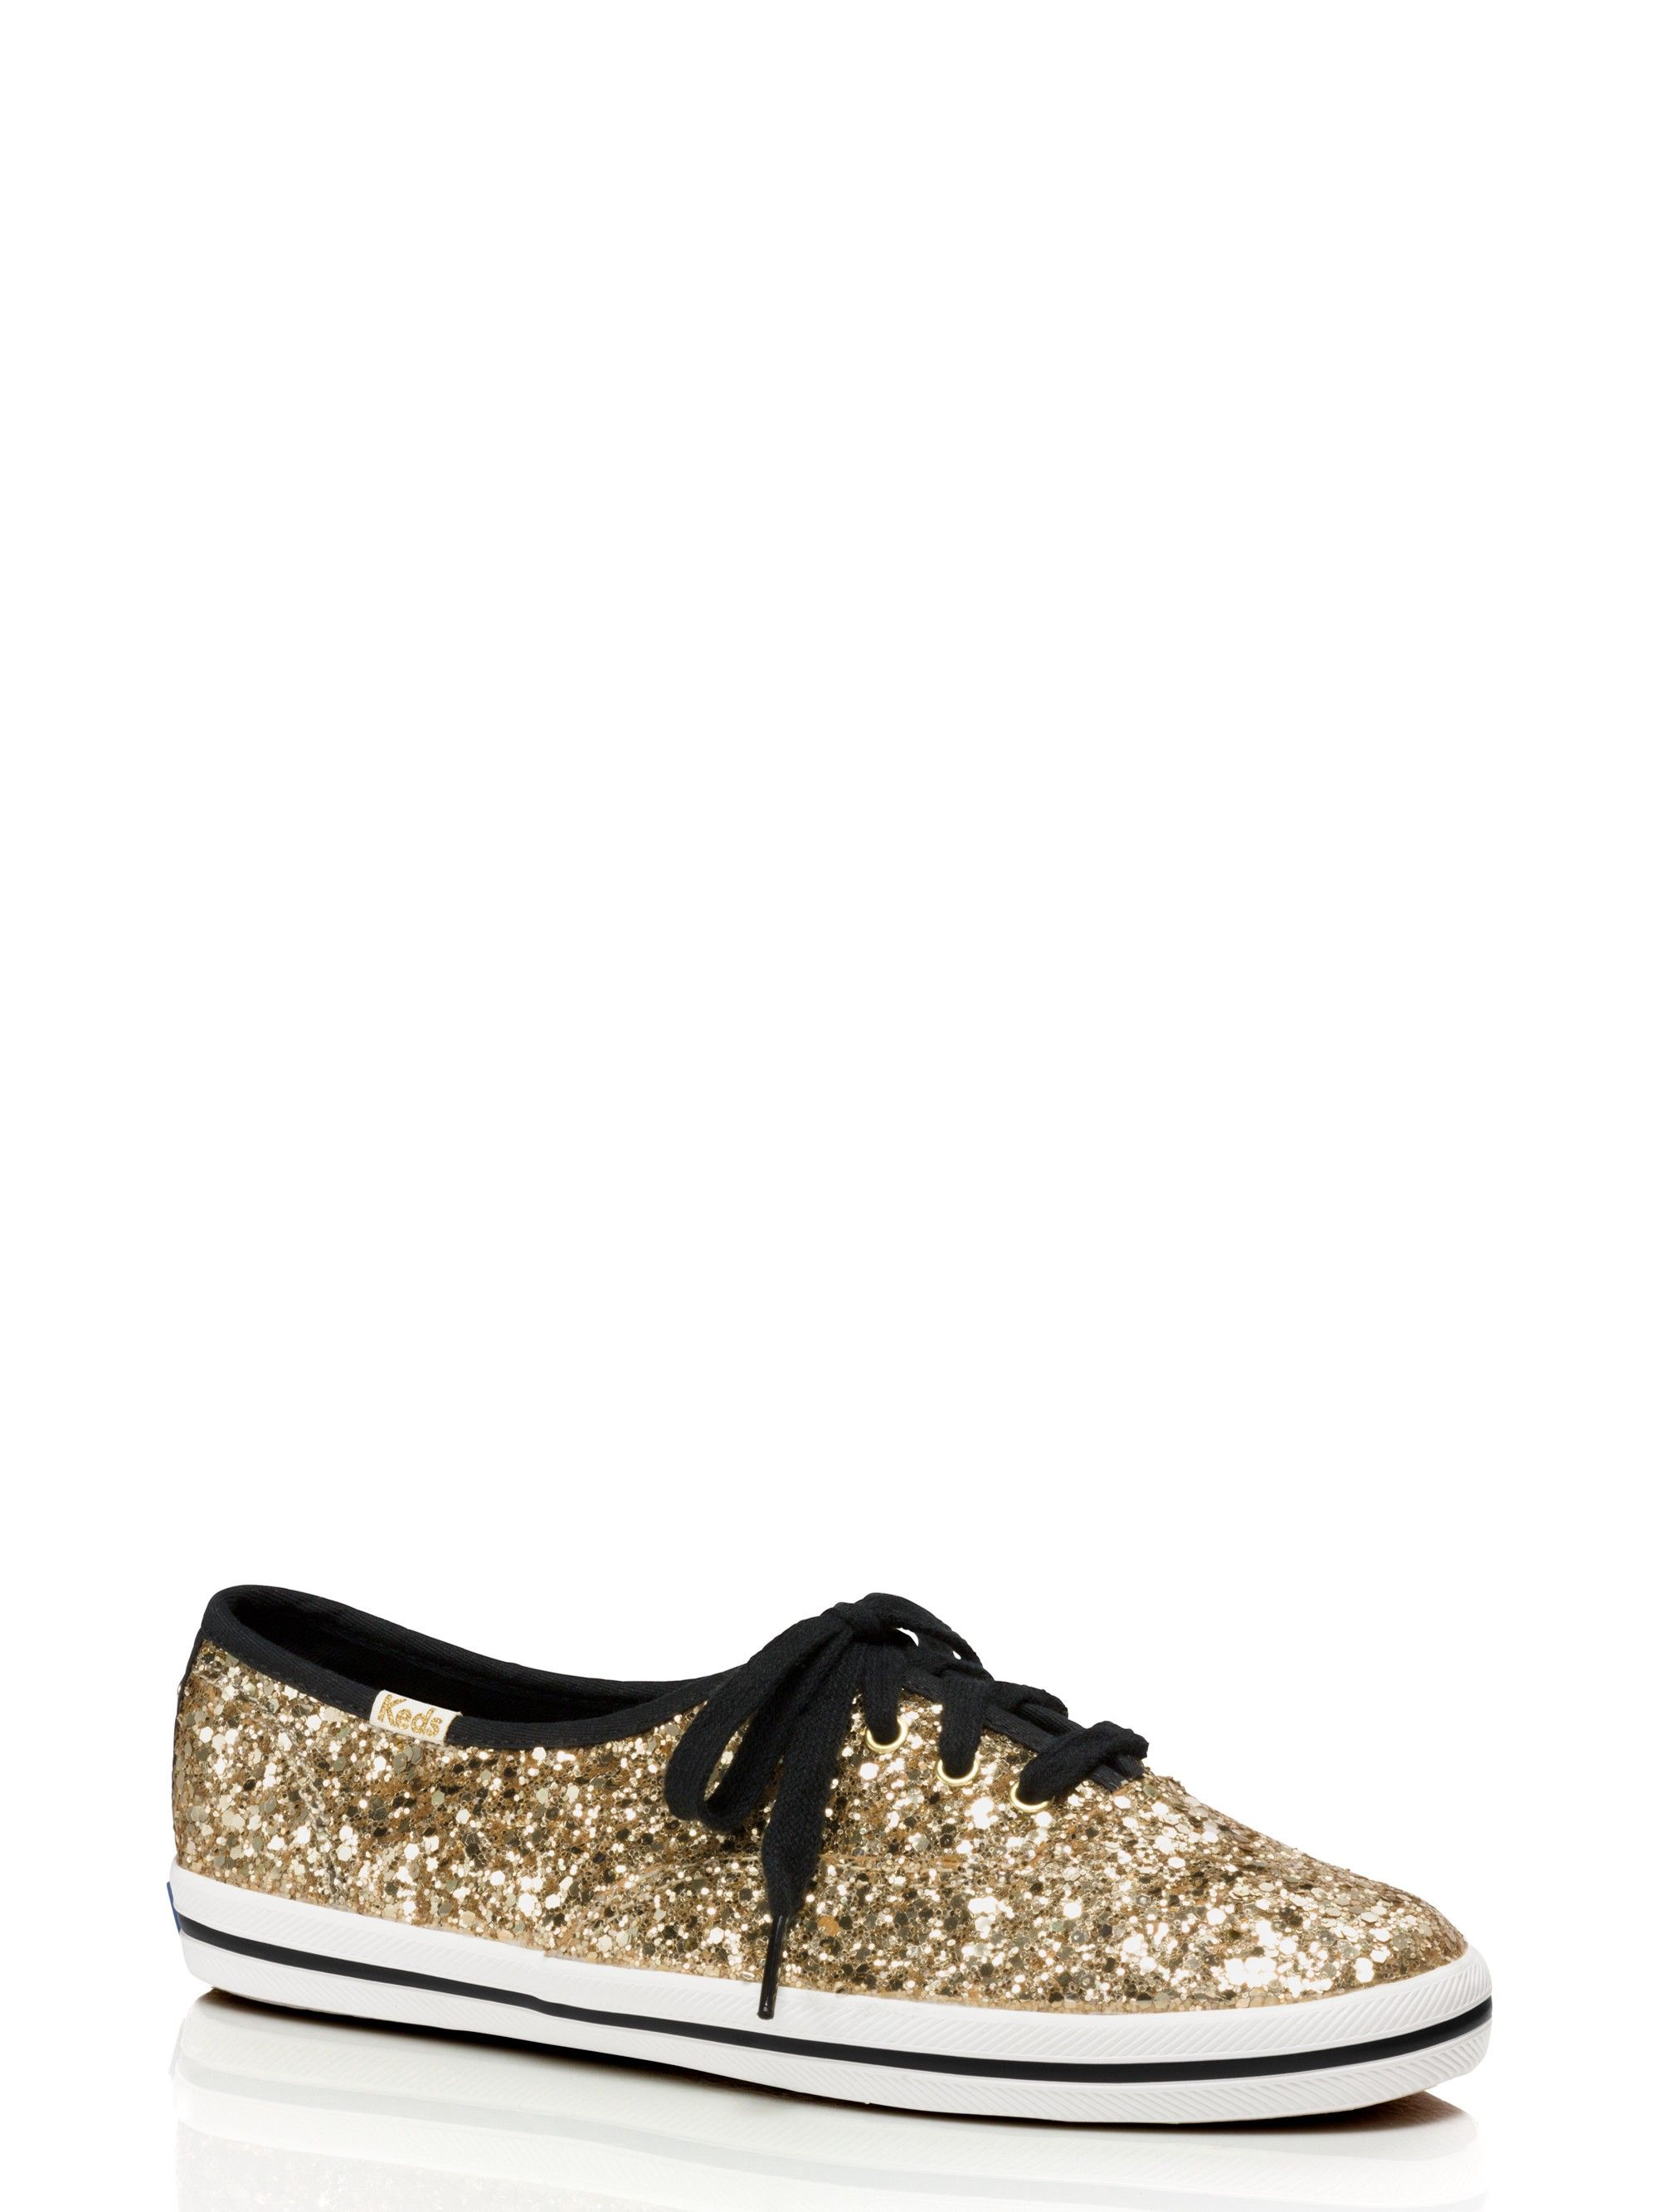 c43ec481 KATE SPADE Keds For Kate Spade New York Glitter Sneakers. #katespade #shoes  #all